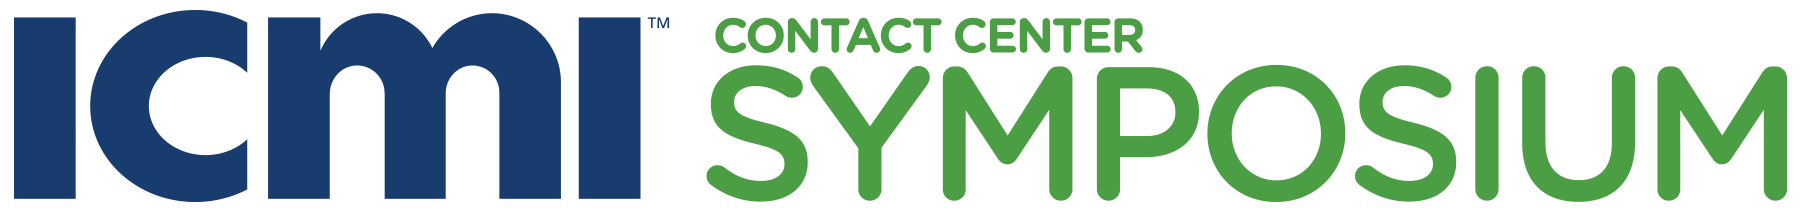 ICMI Contact Center Symposium Logo